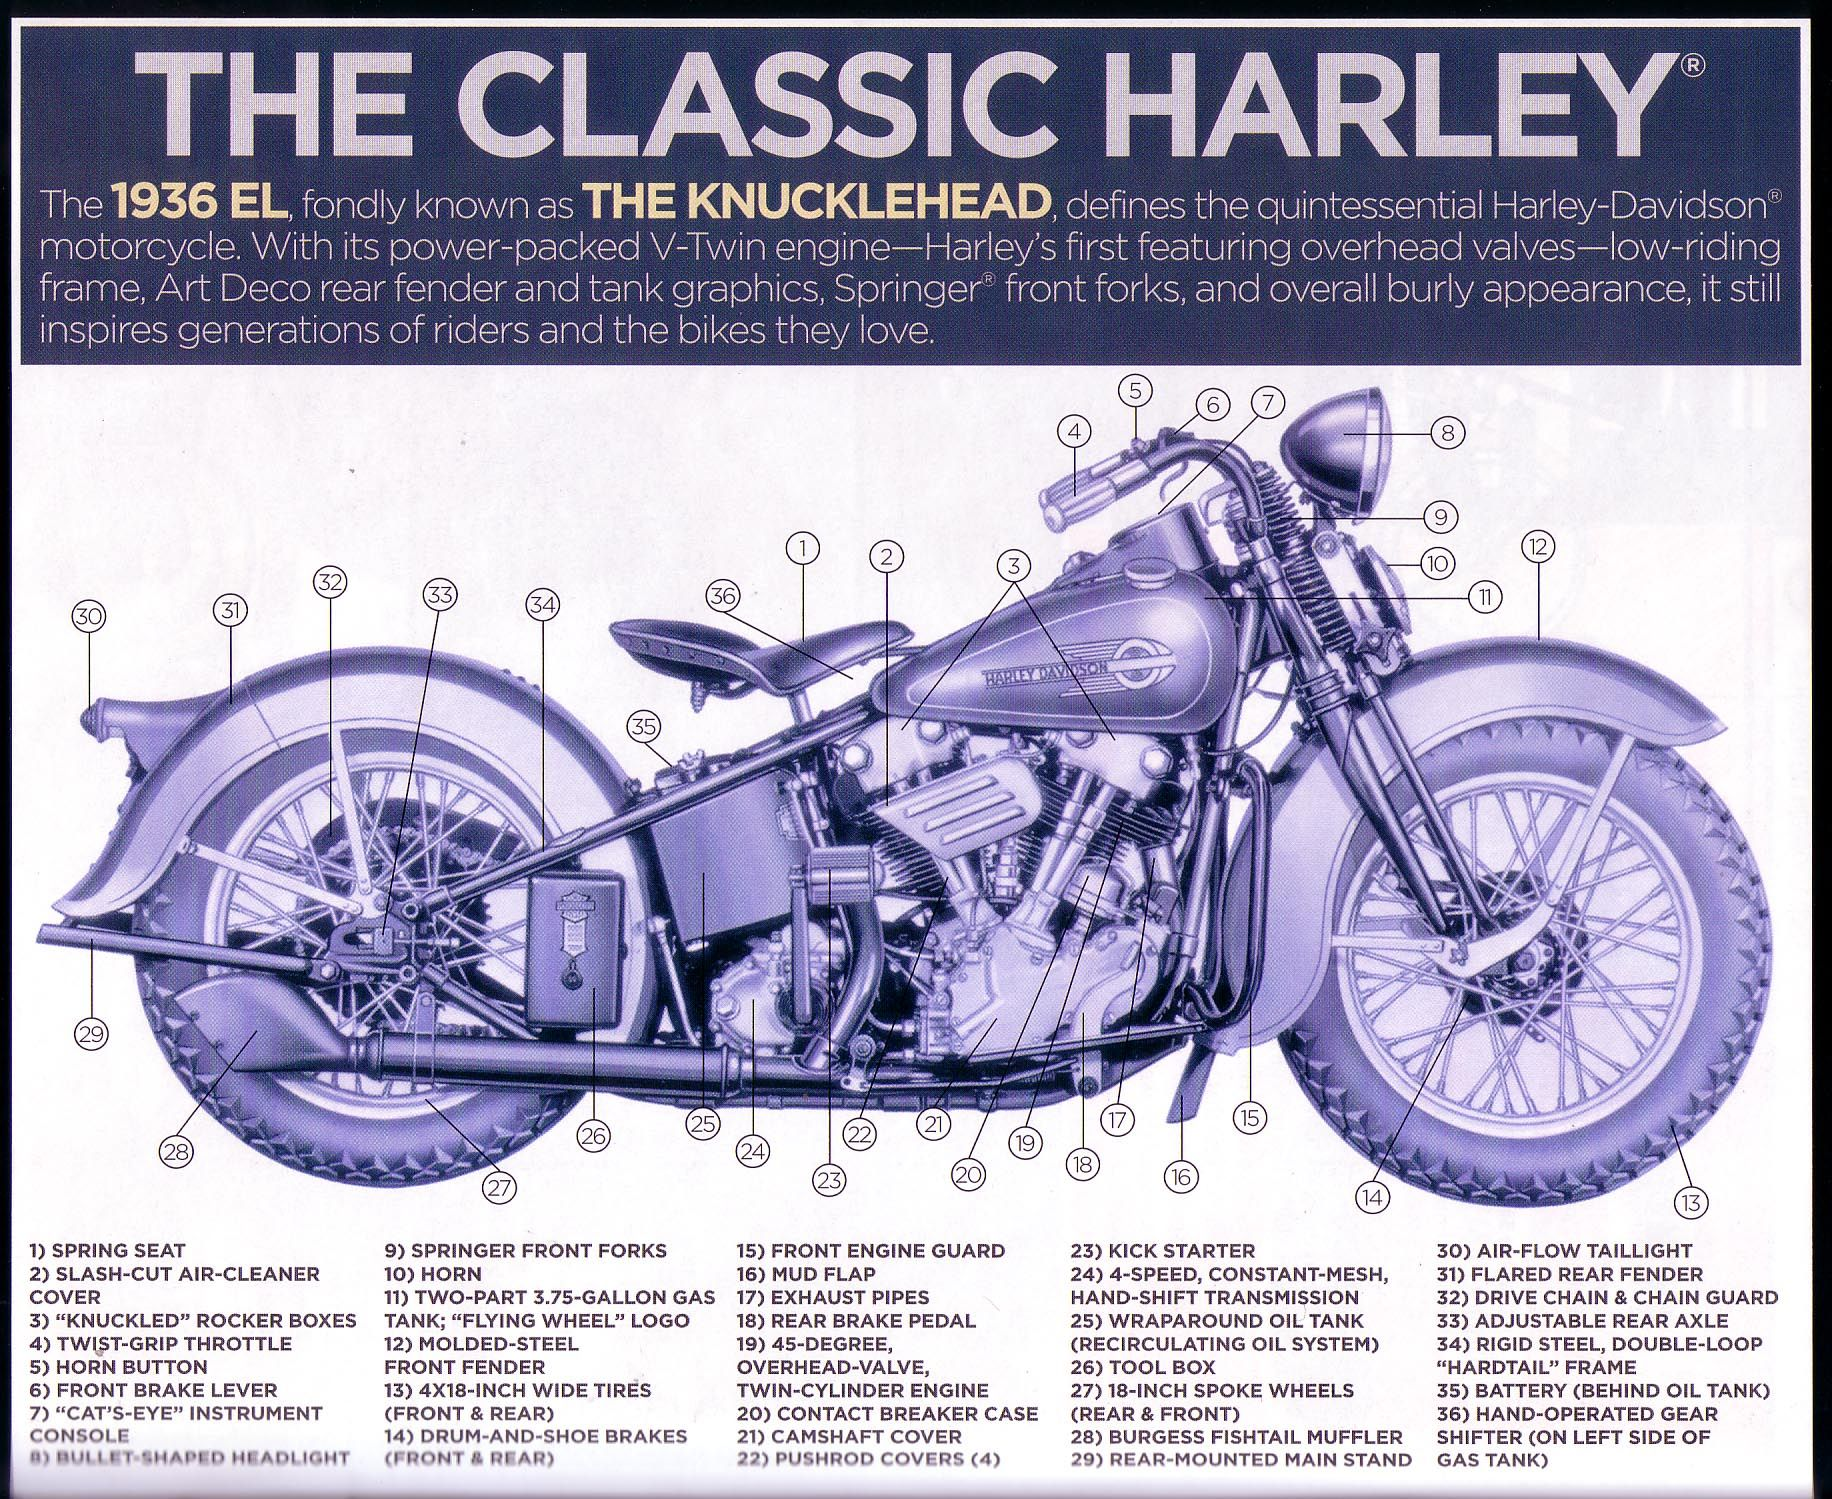 medium resolution of harley davidson motorcycle diagrams wiring diagrams harley springer parts diagram harley davidson motorcycle diagrams wiring diagram